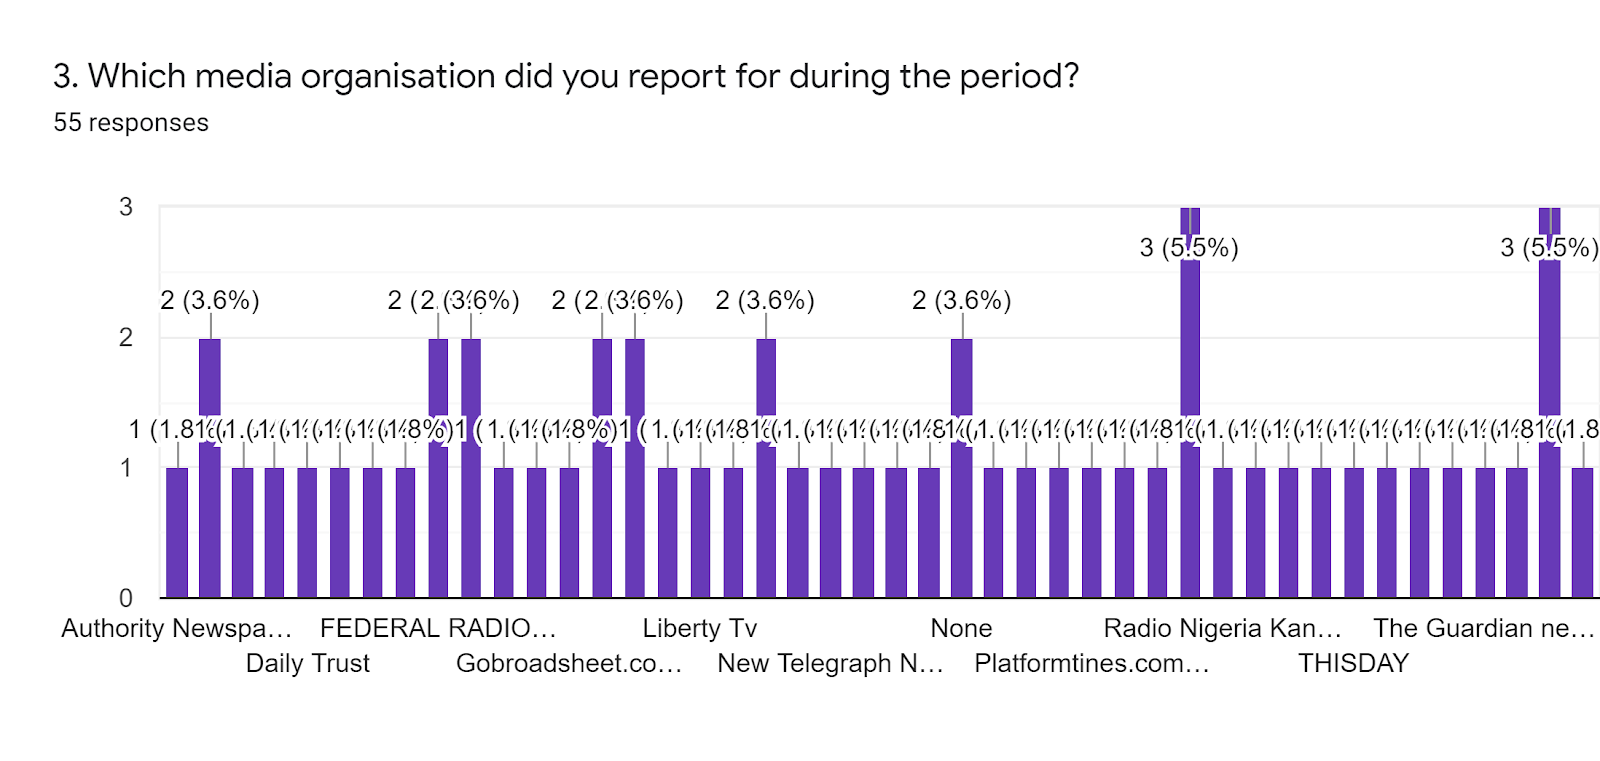 Forms response chart. Question title: 3. Which media organisation did you report for during the period?. Number of responses: 55 responses.